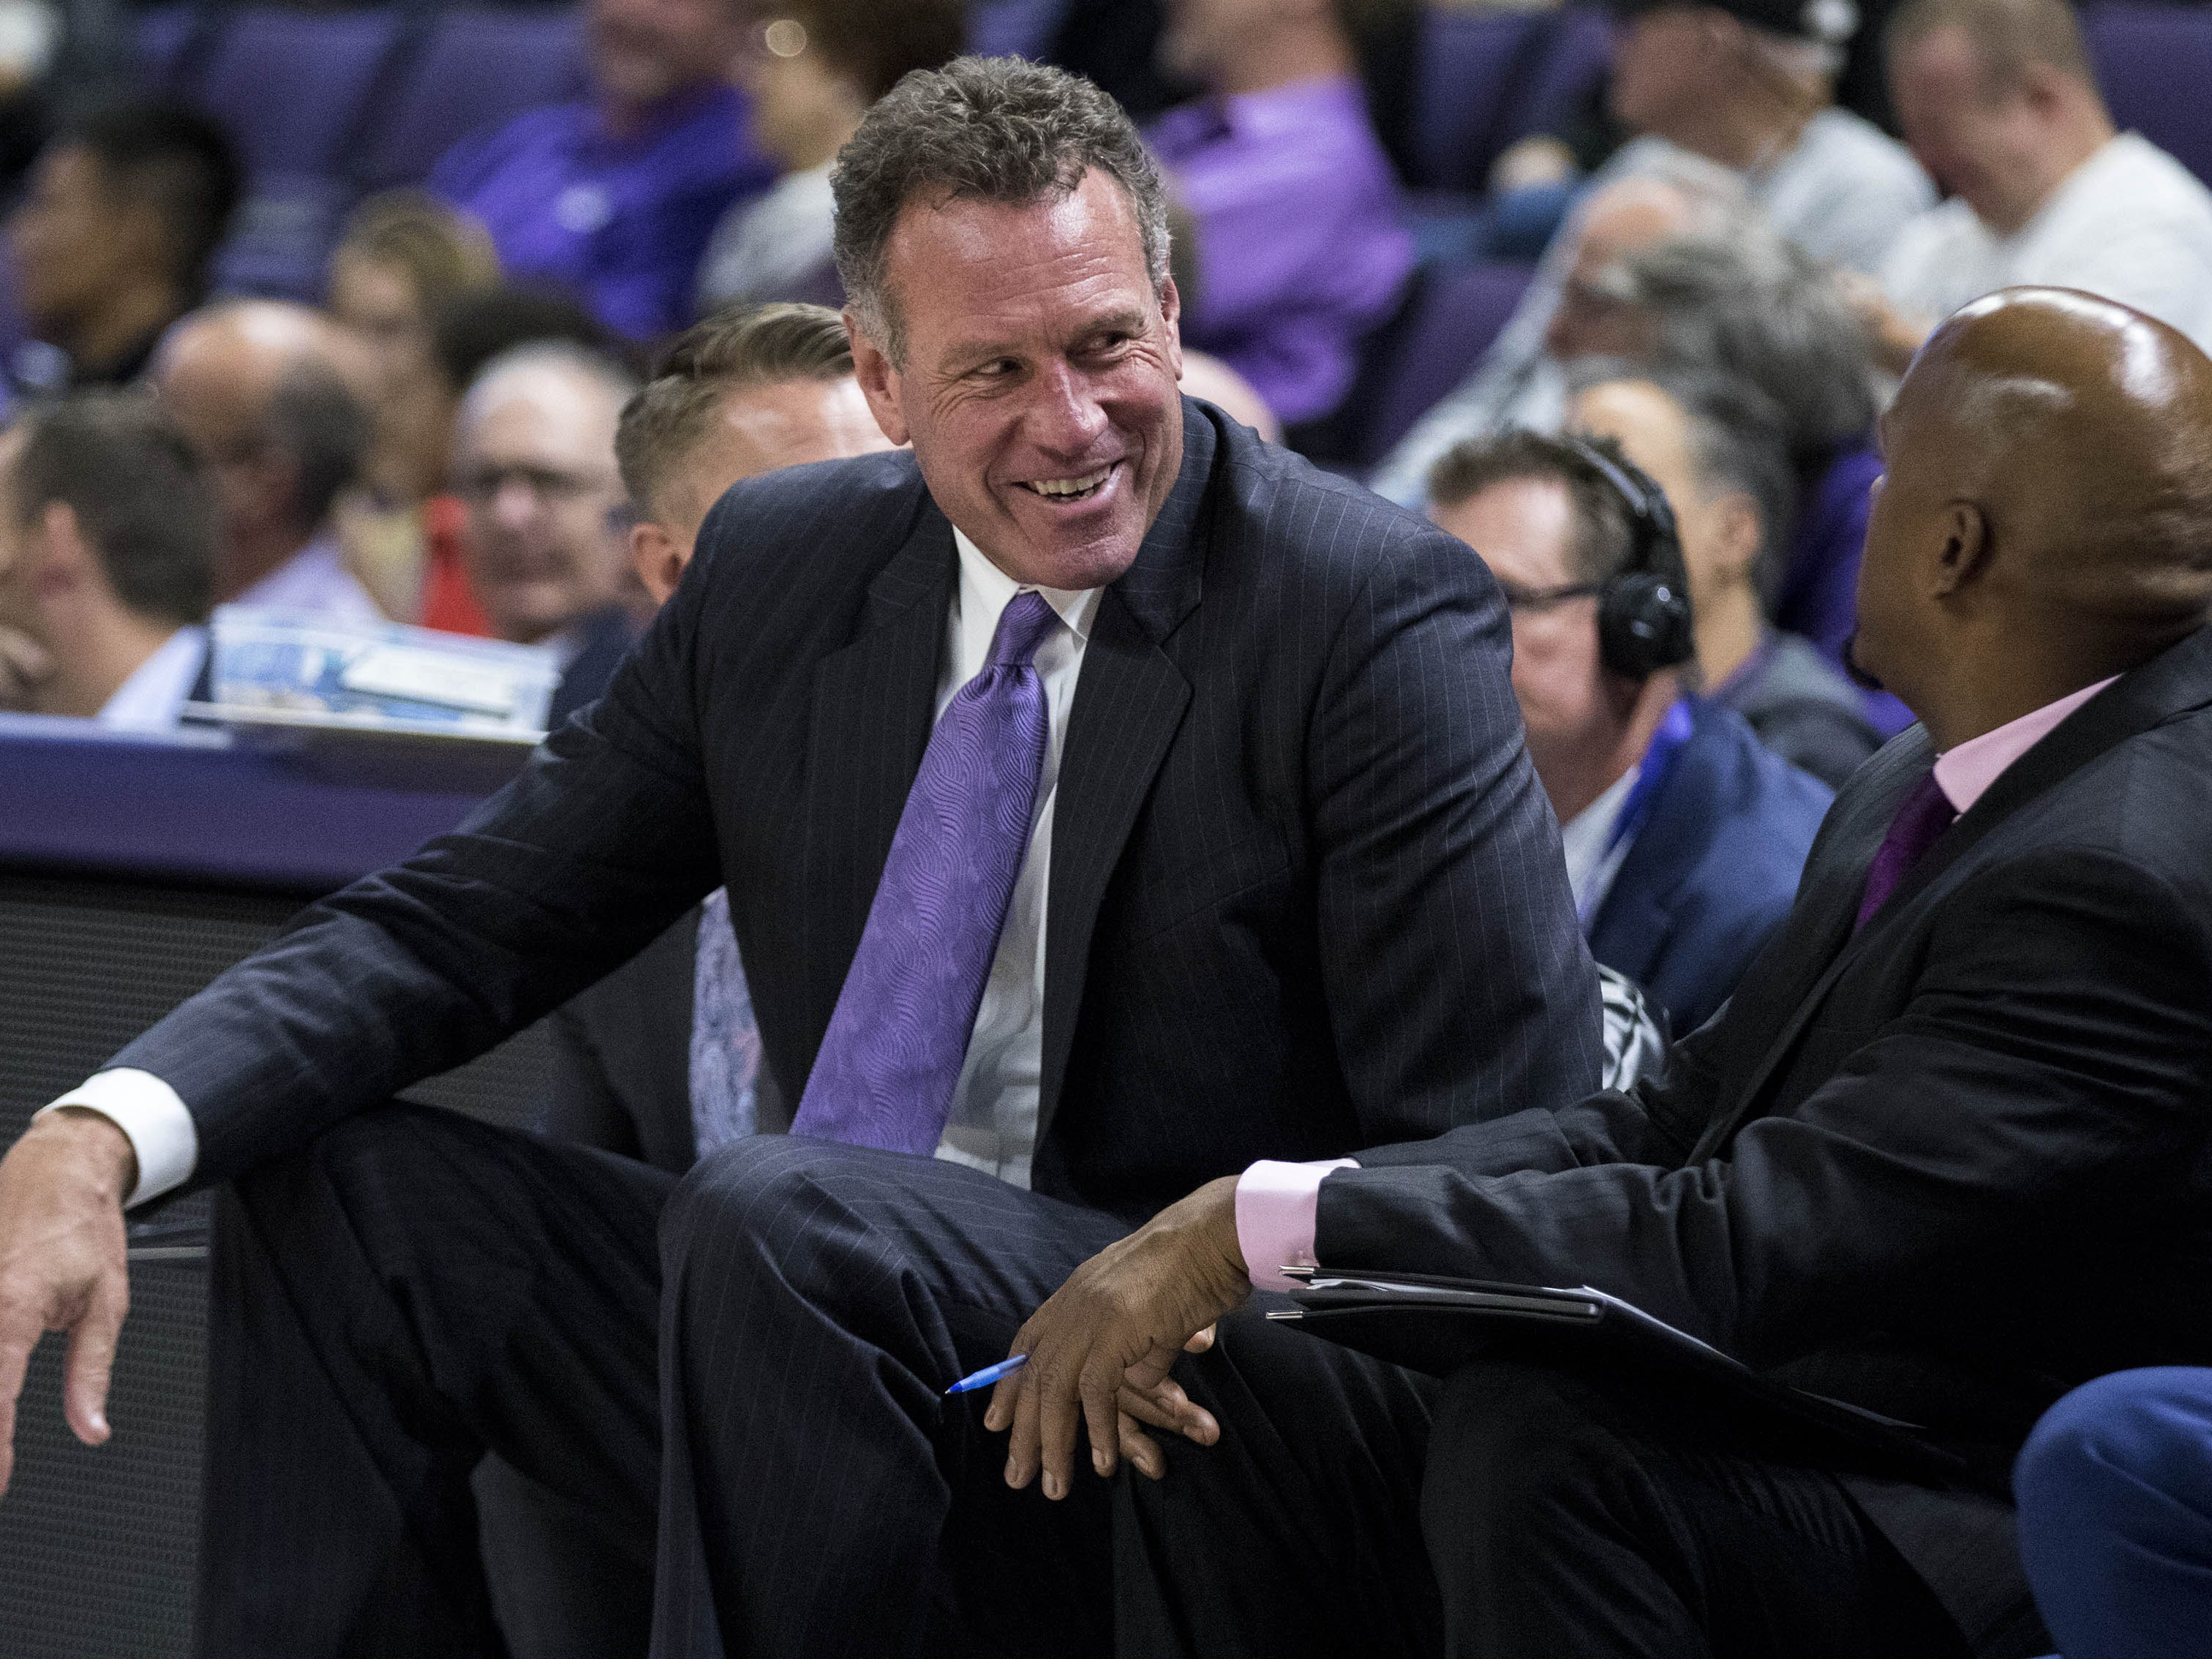 Grand Canyon University head coach Dan Majerle share a laugh with his assistant coach Louis Wilson during the second half of their game in Phoenix, Monday, Nov. 11, 2018.